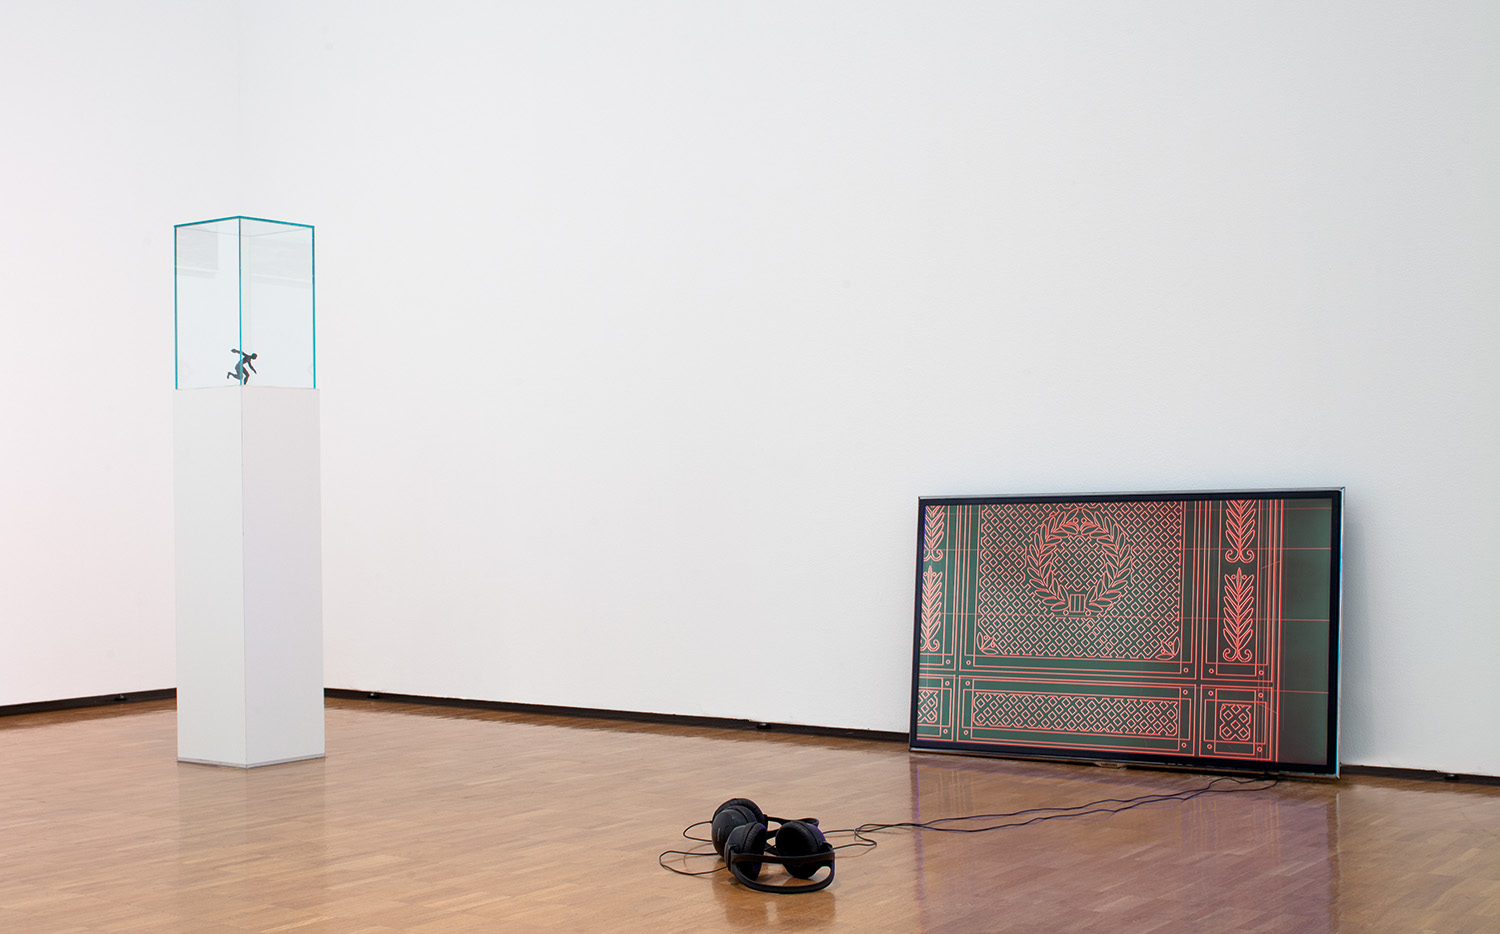 installationsansicht • Preview - Kunsthalle Sparkasse Leipzig • a returning course of movement • 2019